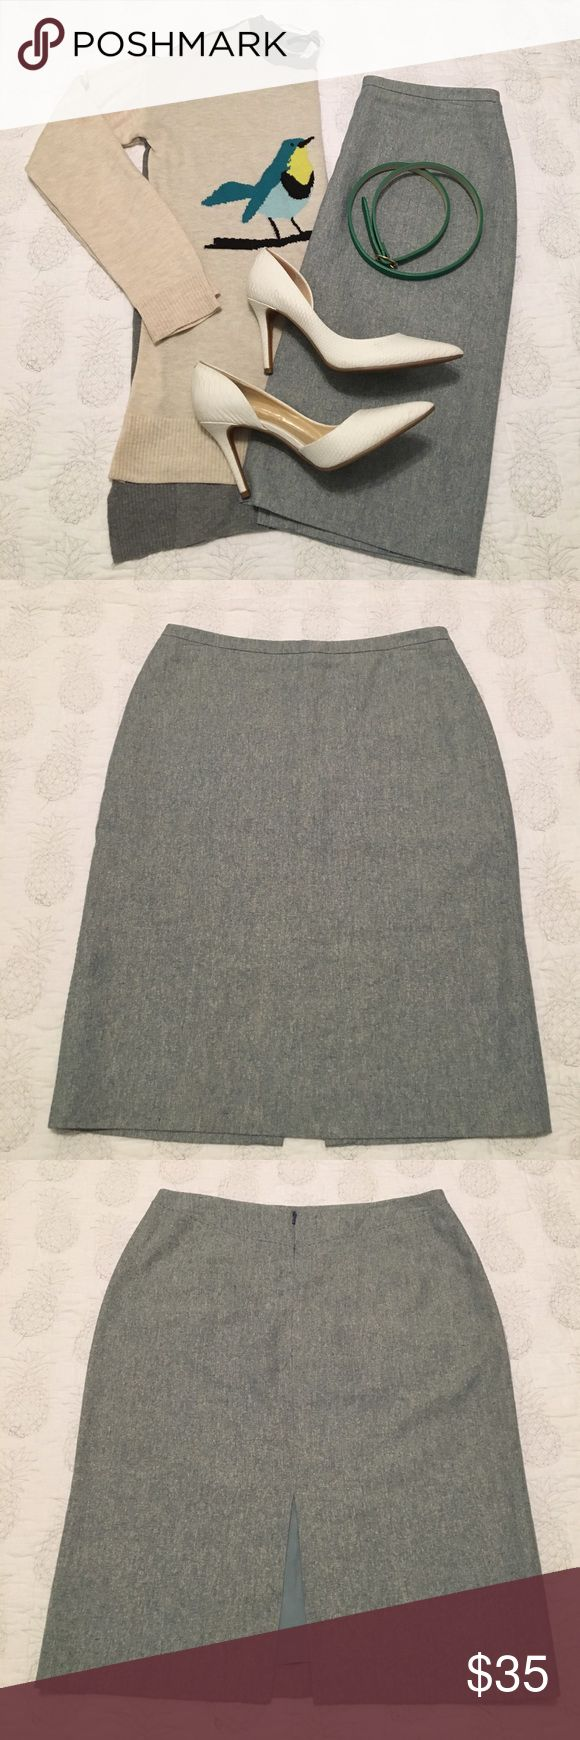 Banana Republic silk & linen pencil skirt This is a silk and linen pencil skirt from Banana Republic. It has delicate stitching detail on the back and down the sides to add a slight twist to your average work skirt.it is a blueish grey color with white threading throughout. It is a soft skirt that is fully lined with a sizable slit in the back where the seams have barely separated (pictured). This was a pregnancy favorite, but no longer fits. Pair it with a crisp white button down or a silk…